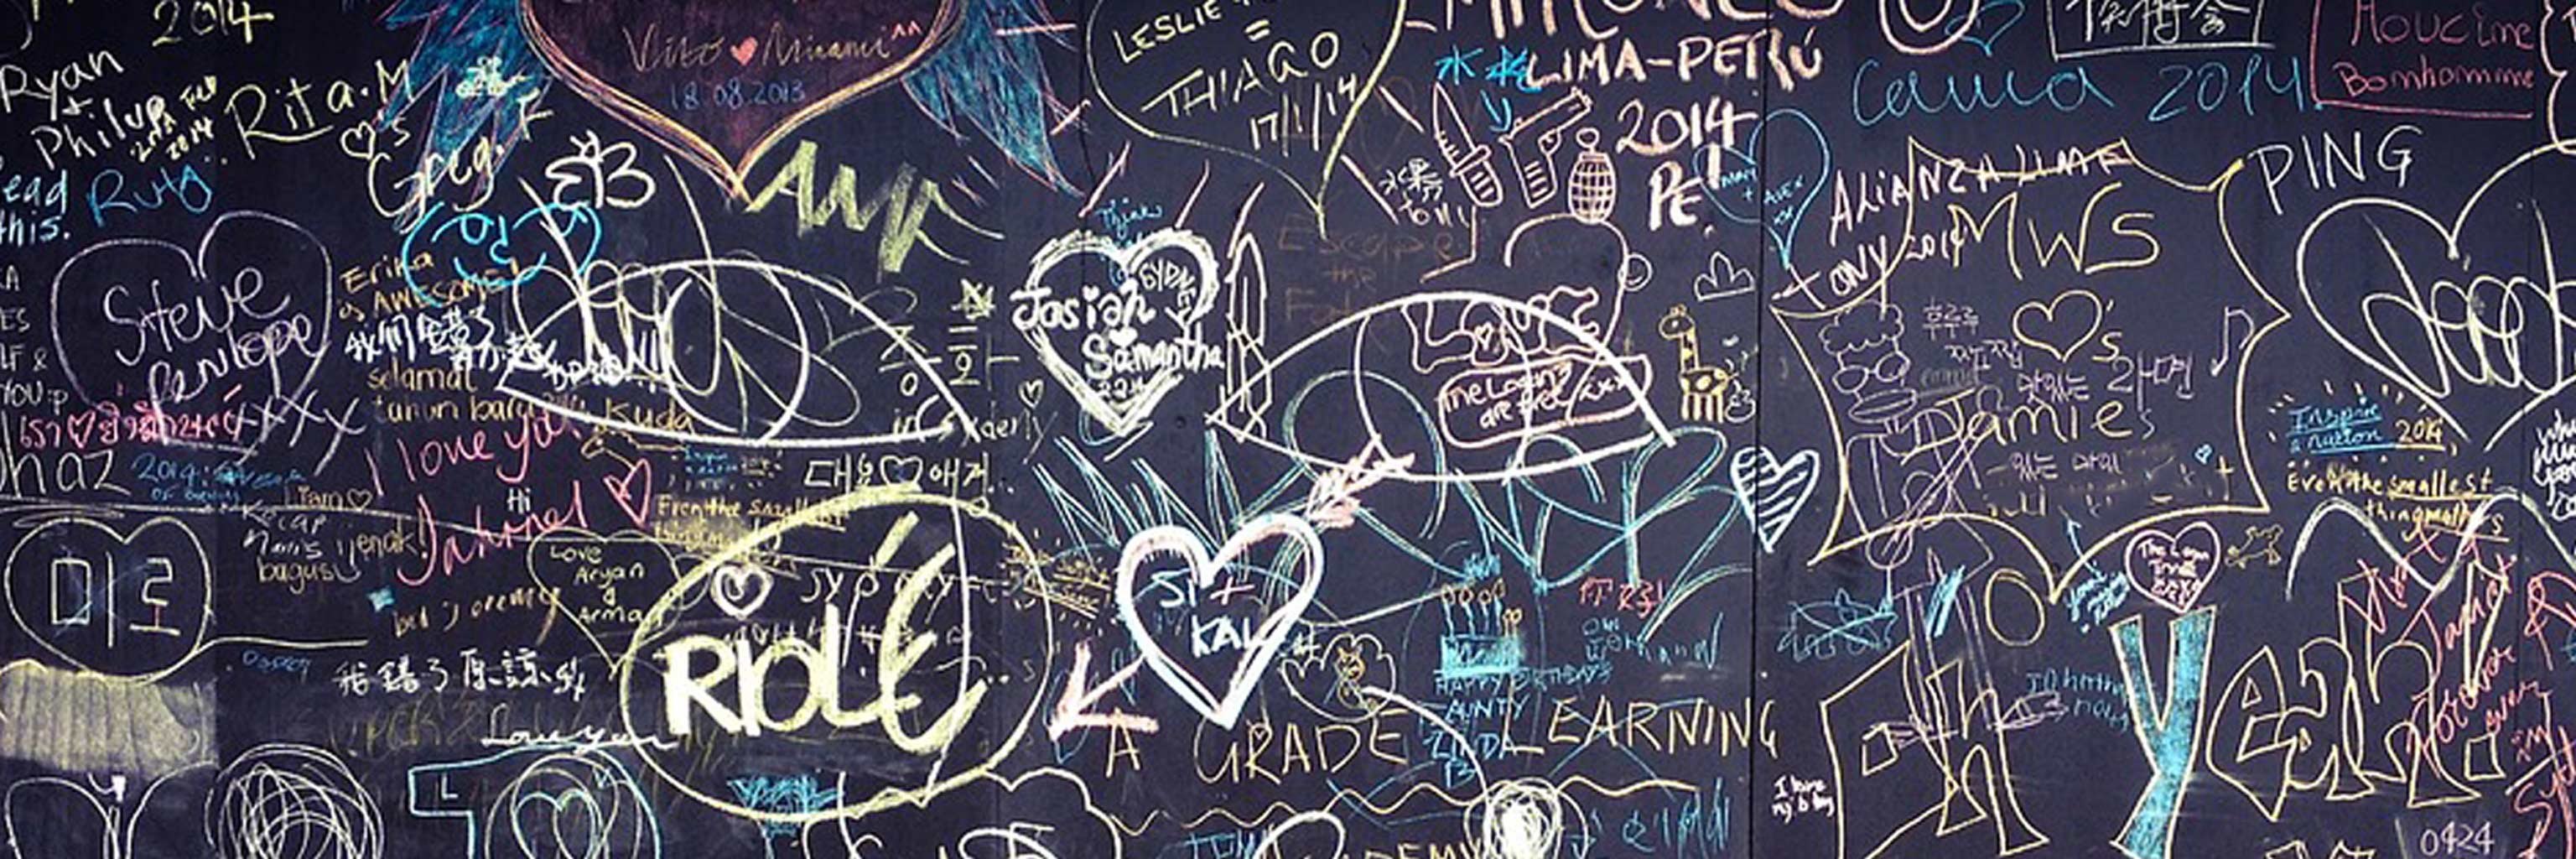 blackboard of signatures from students